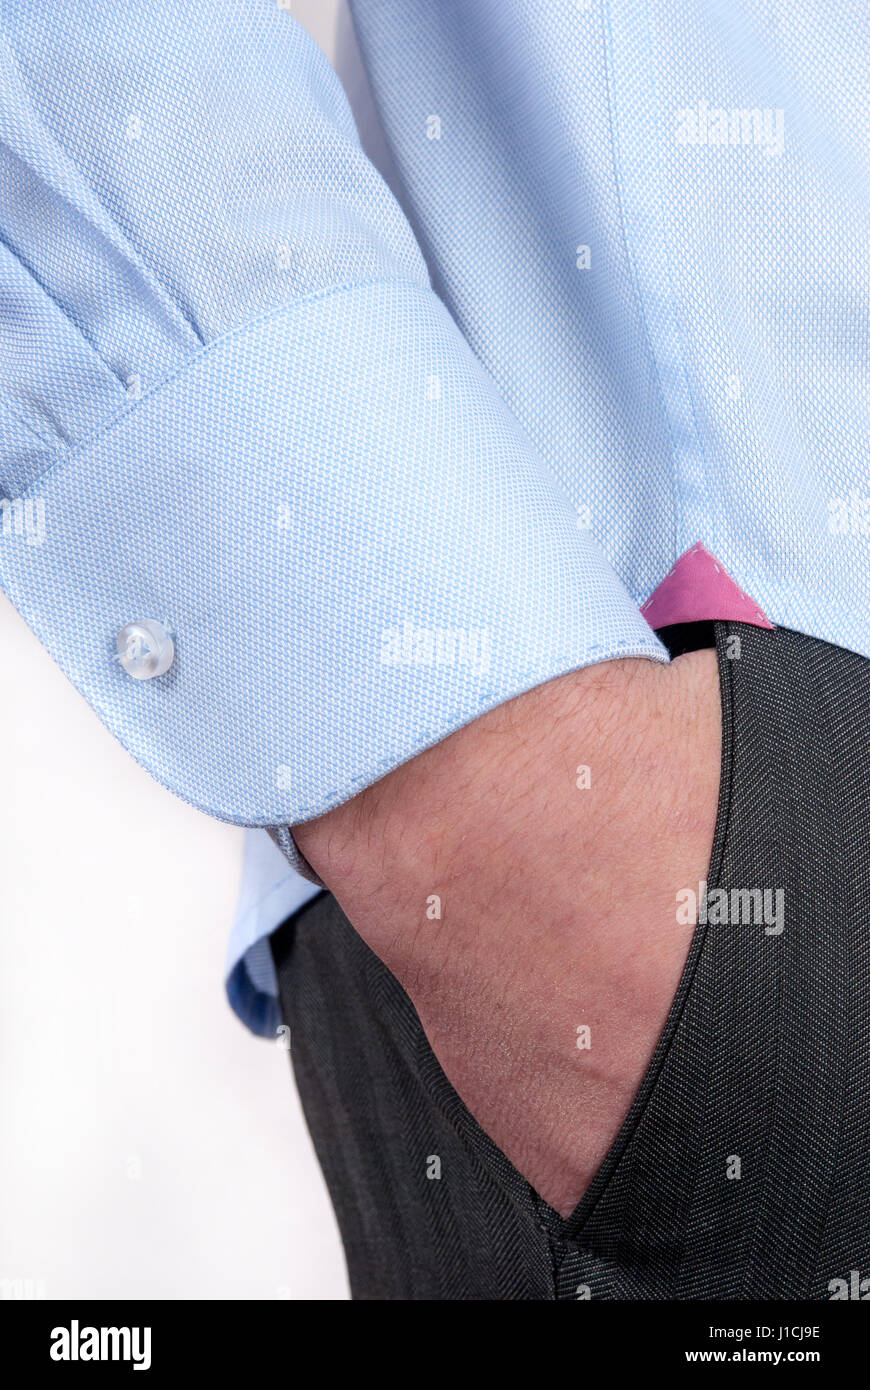 The man's hand in the pants pocket  close-up Stock Photo